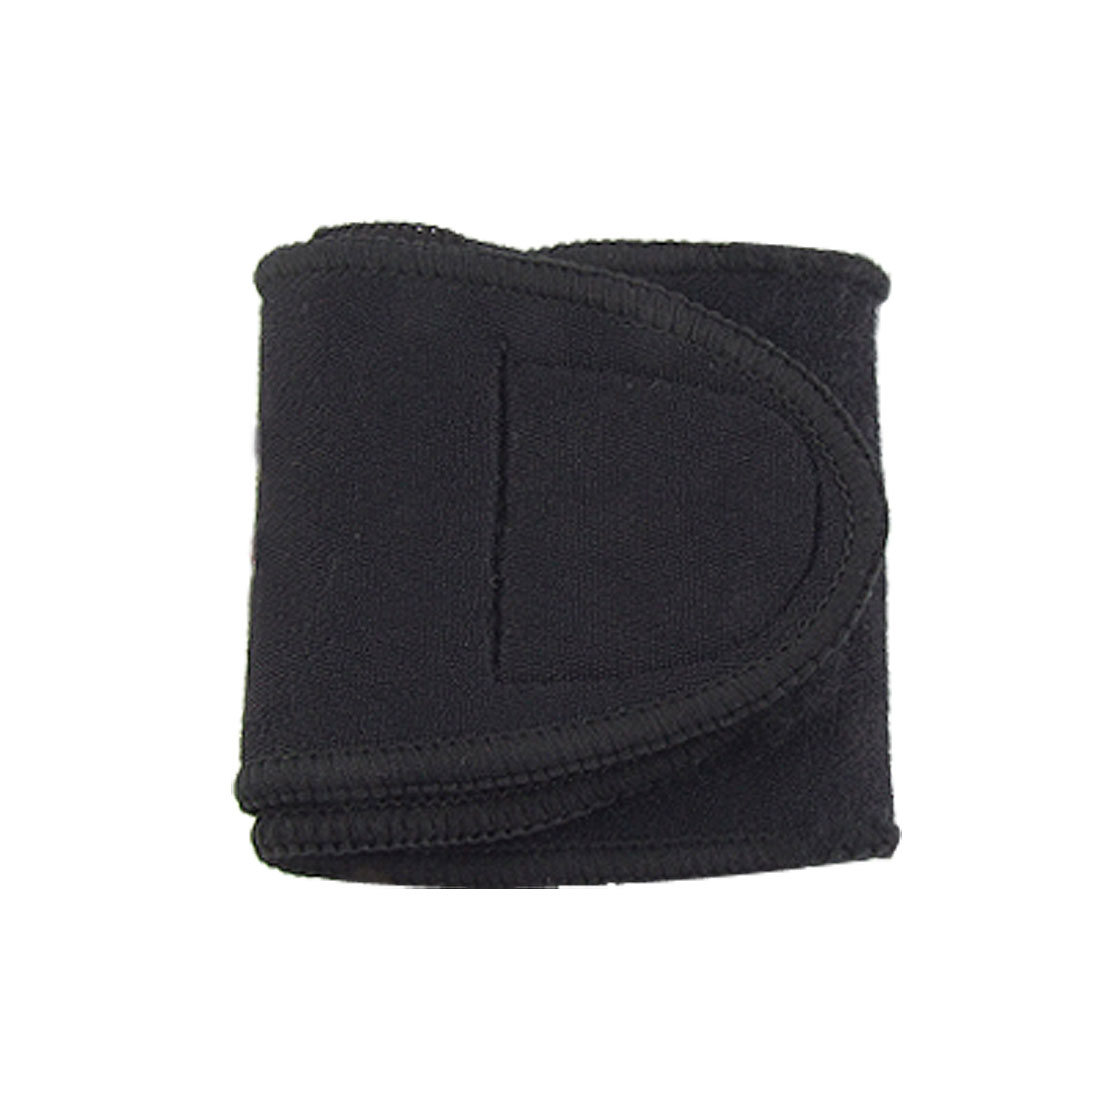 Black Detachable Closed Wrist Support Protector Wrap Band S